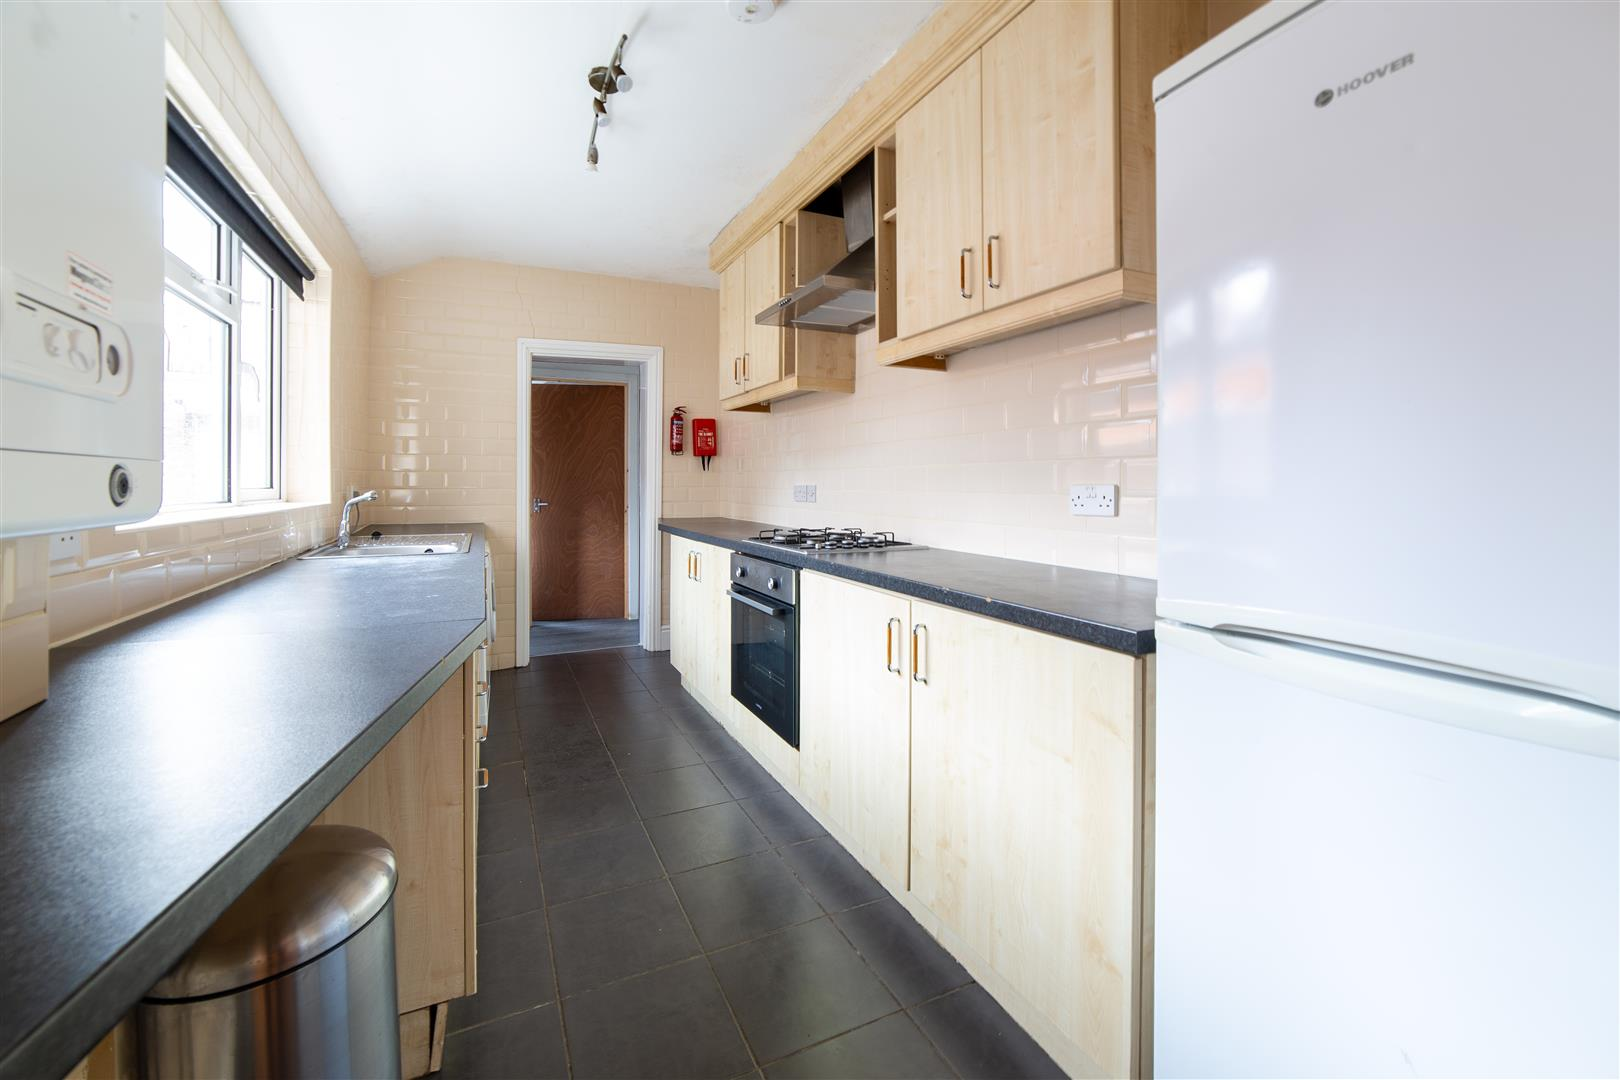 5 bed terraced house to rent in Newcastle Upon Tyne, NE6 5SN 1